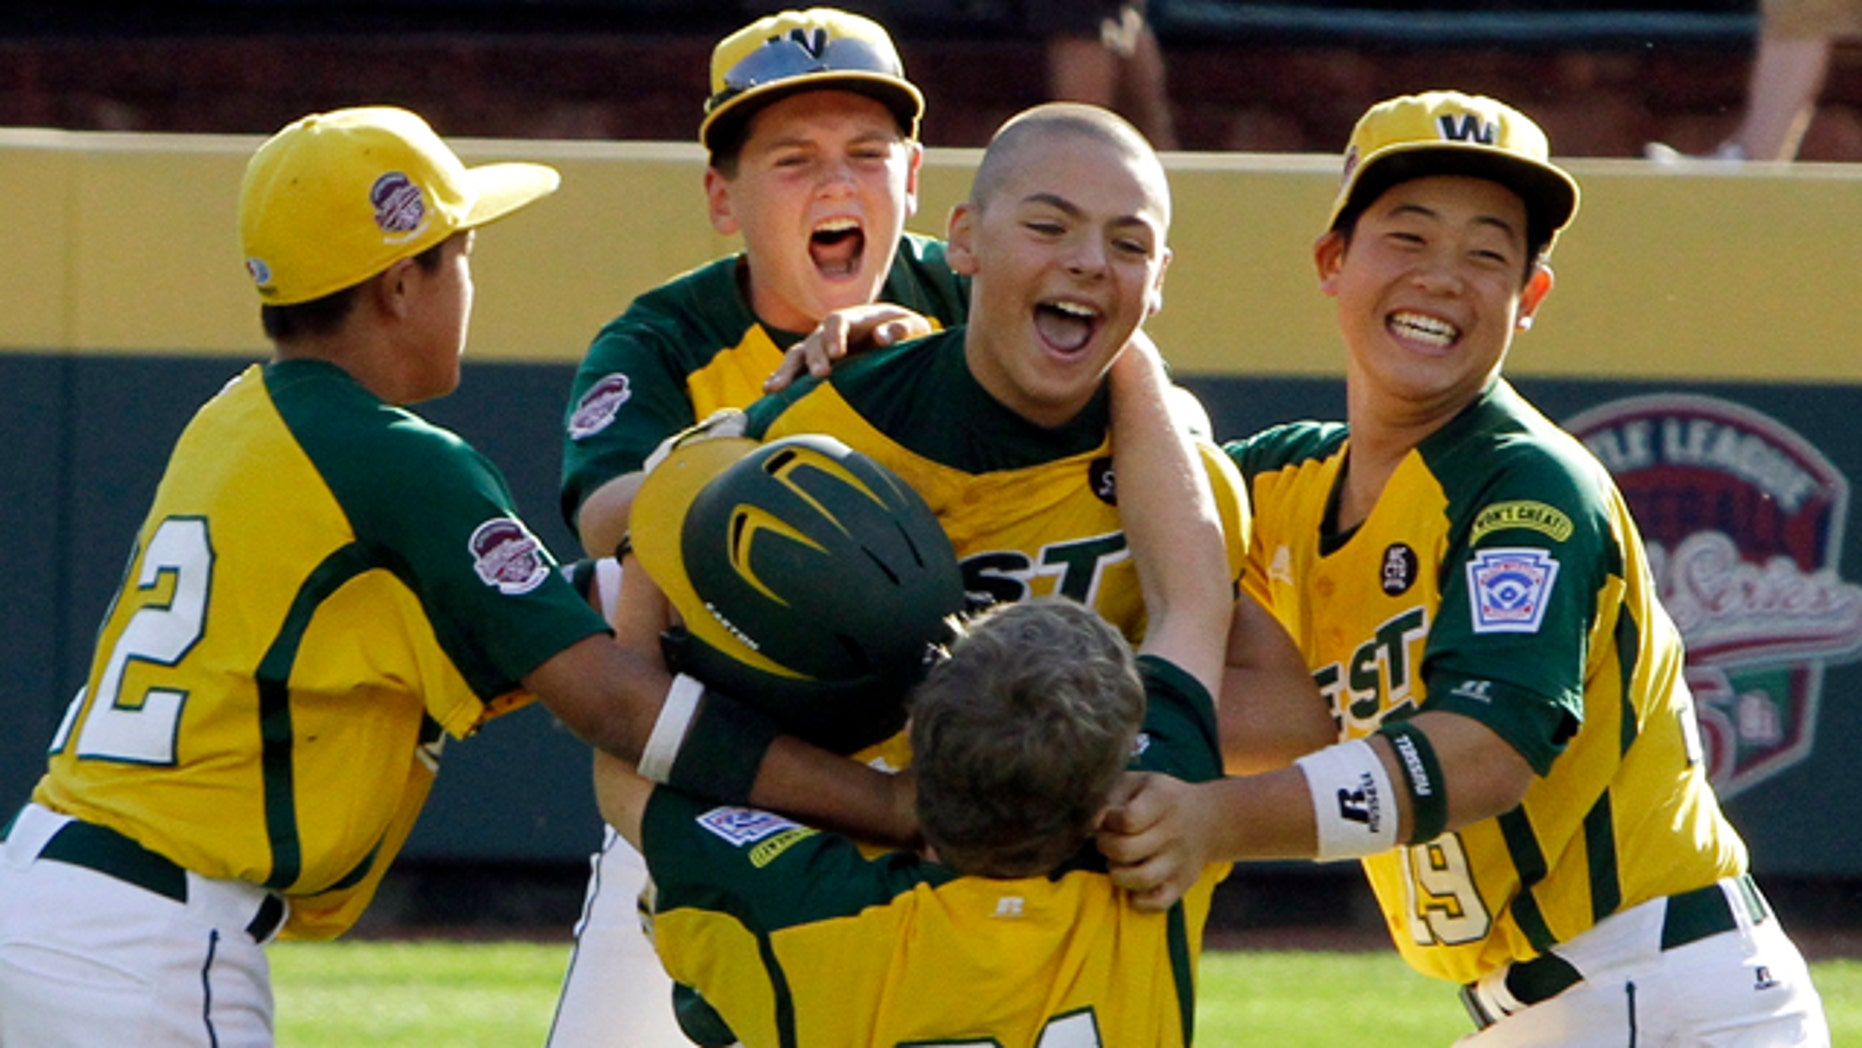 Aug. 28: Huntington Beach, Calif.'s Nick Pratto, center, celebrates with teammates after driving in the winning run with a walk-off single off Hamamatsu City, Japan, pitcher Kazuto Takakura to win the Little League World Series Championship baseball game in South Williamsport, Pa. California won 2-1.